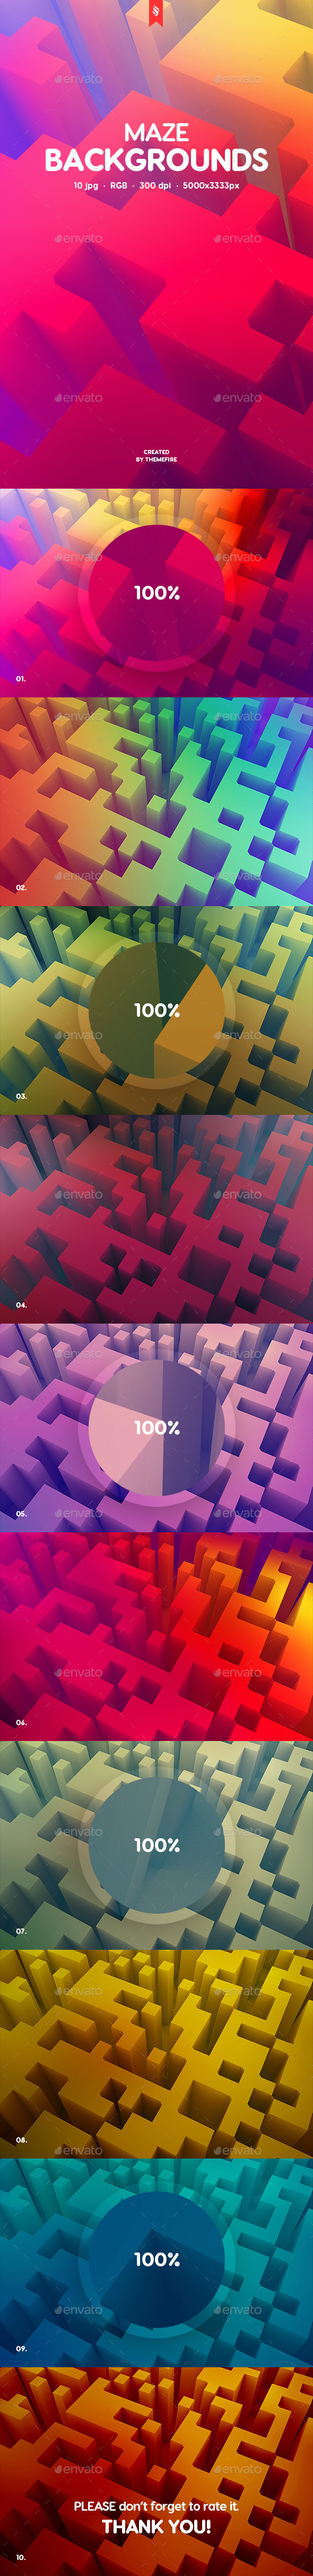 Maze Backgrounds - Abstract Backgrounds